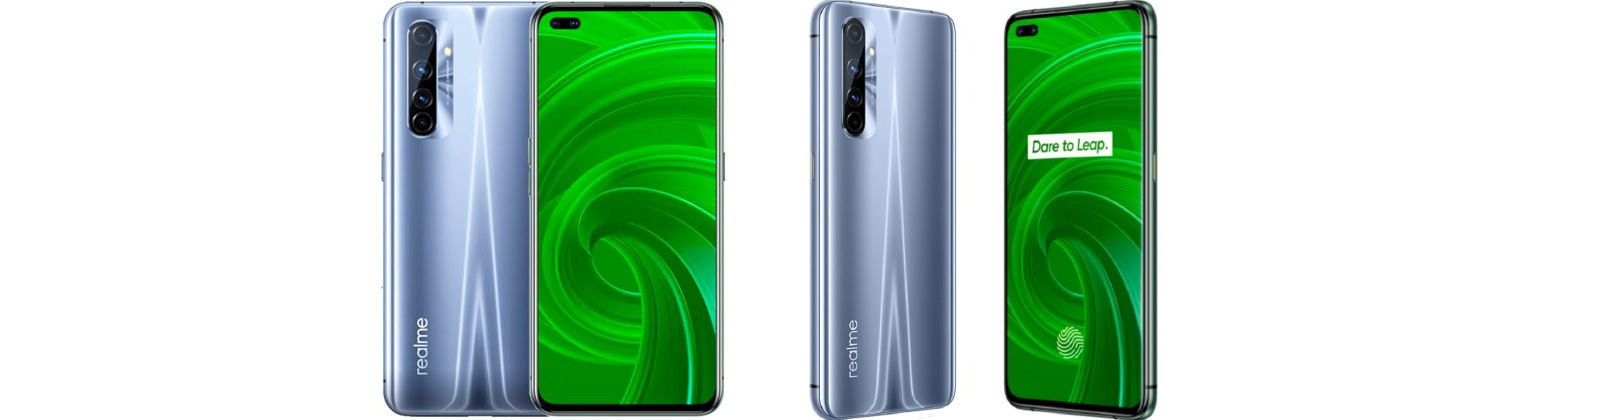 Realme X50 Pro Player is announced - specifications and features